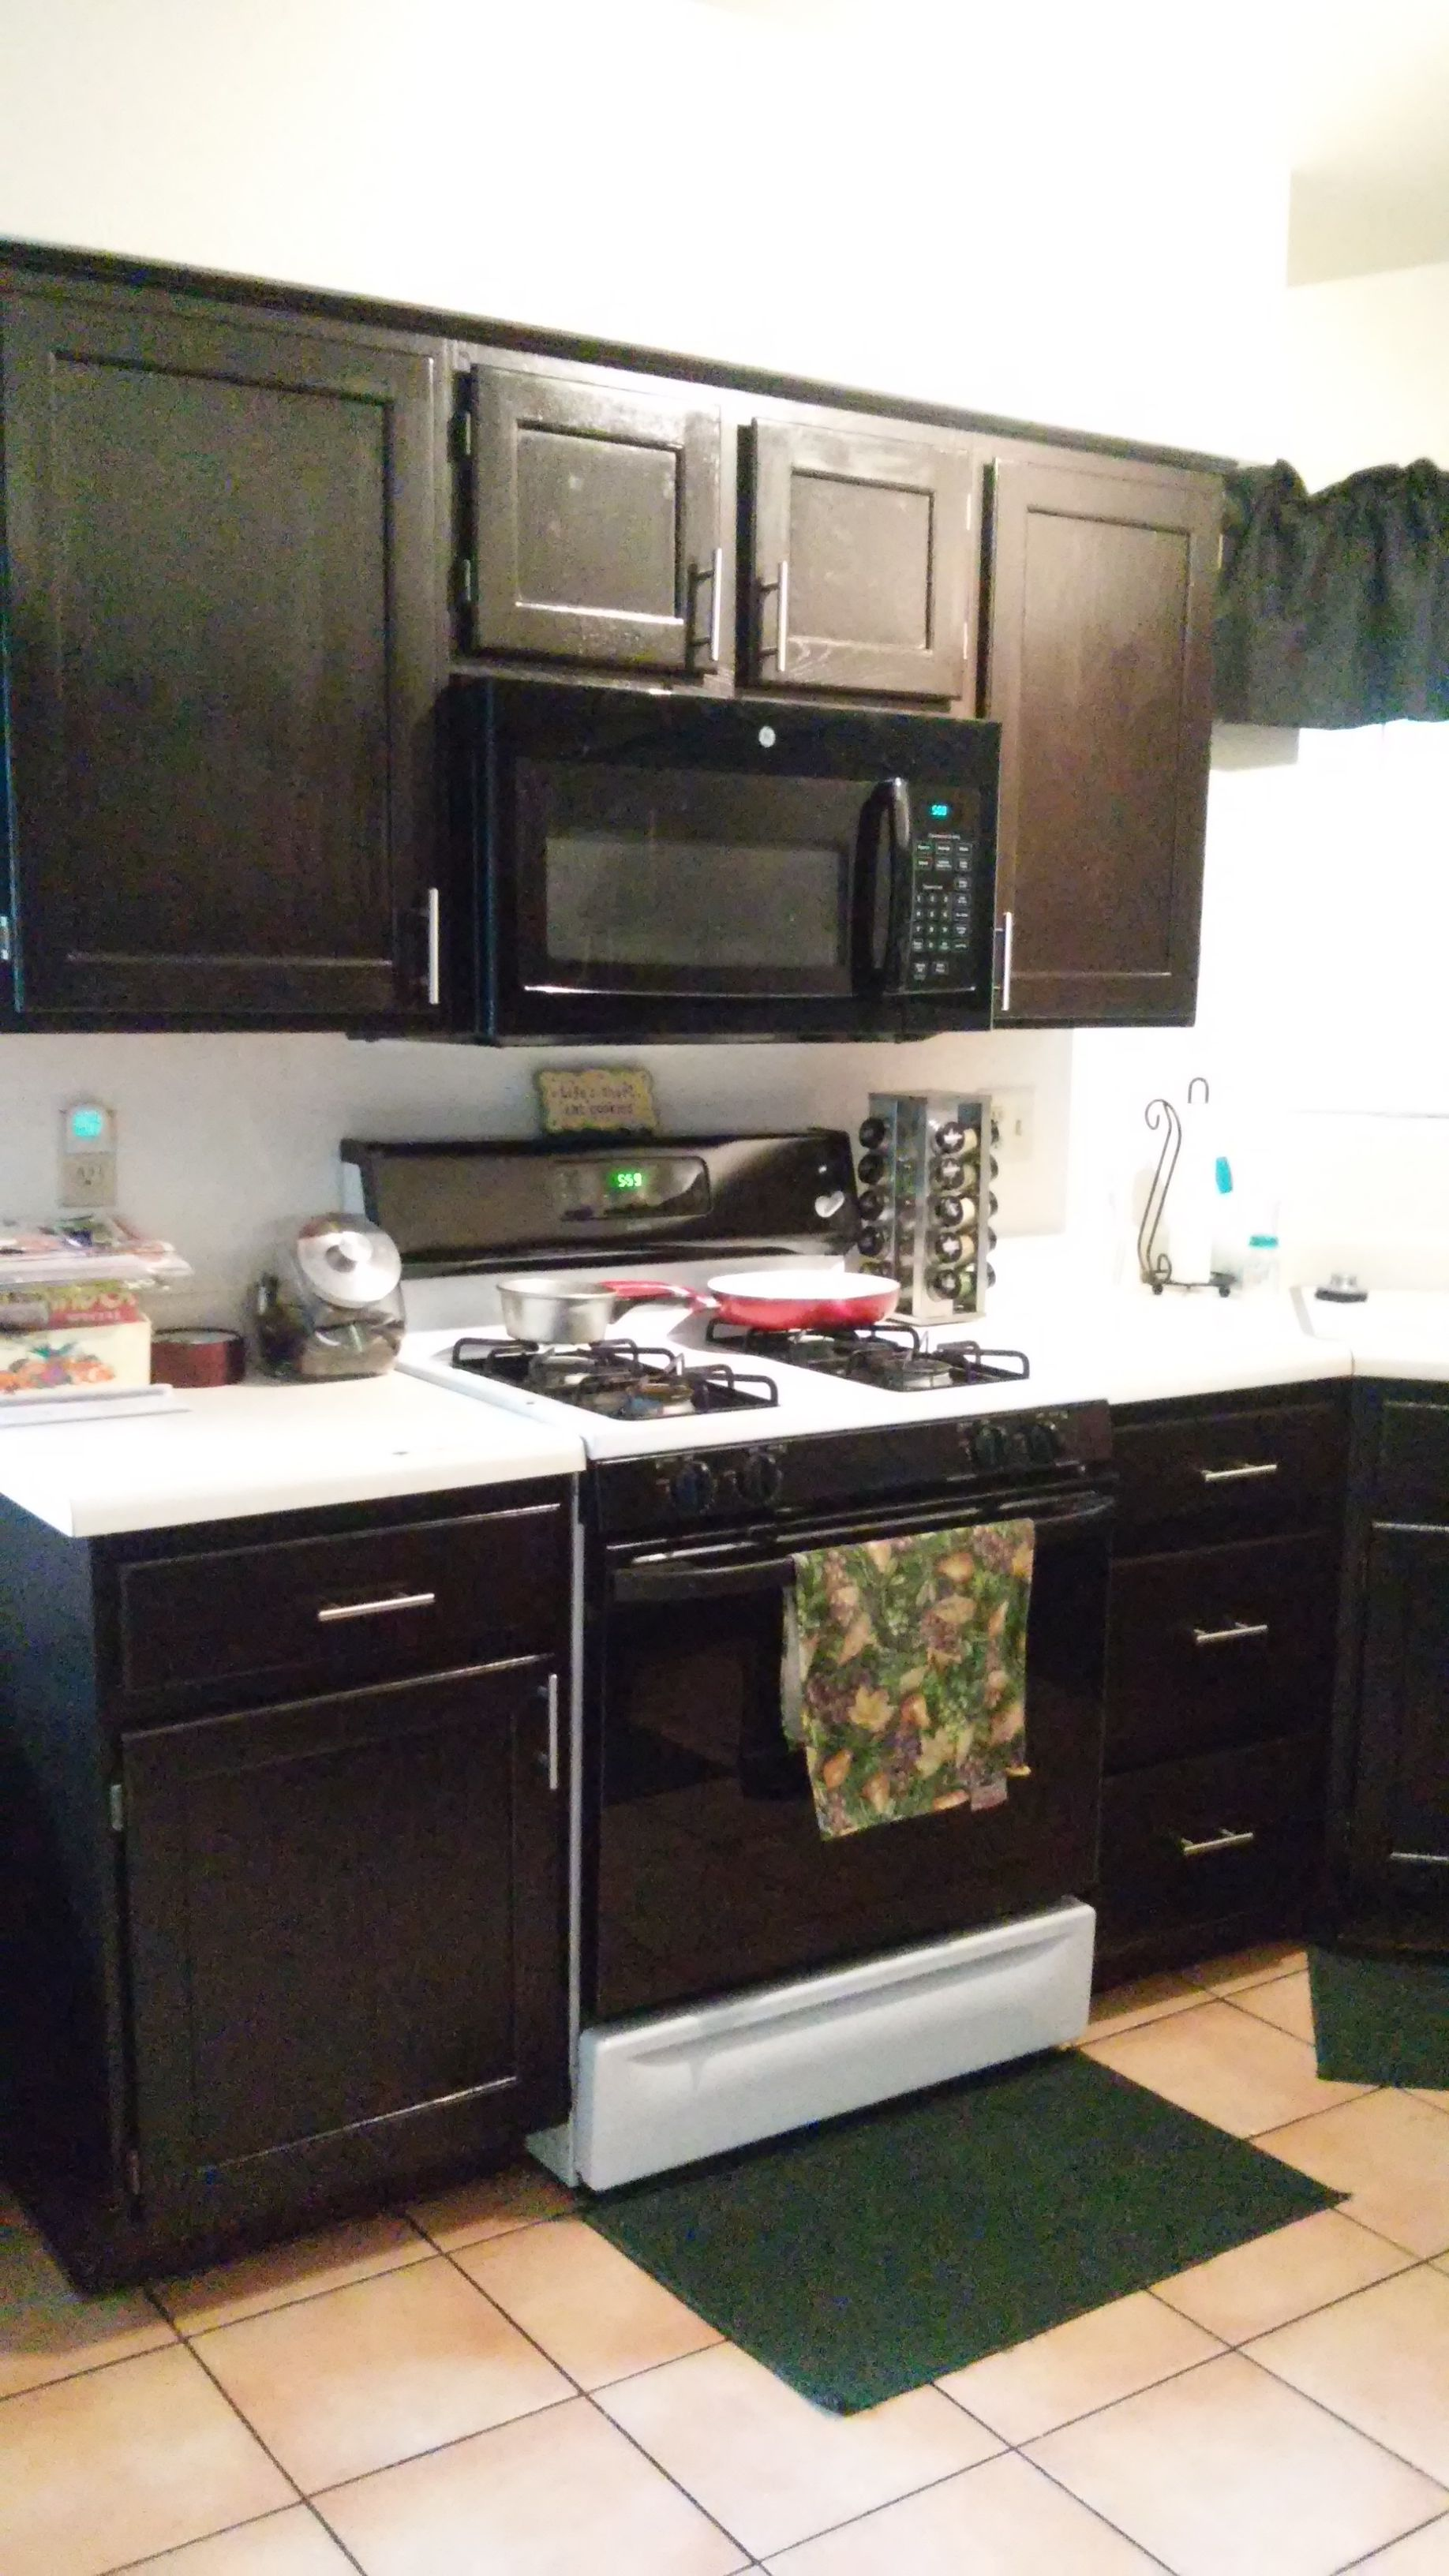 Pin by Melanie Saunders on My Renos | Kitchen cabinets ...